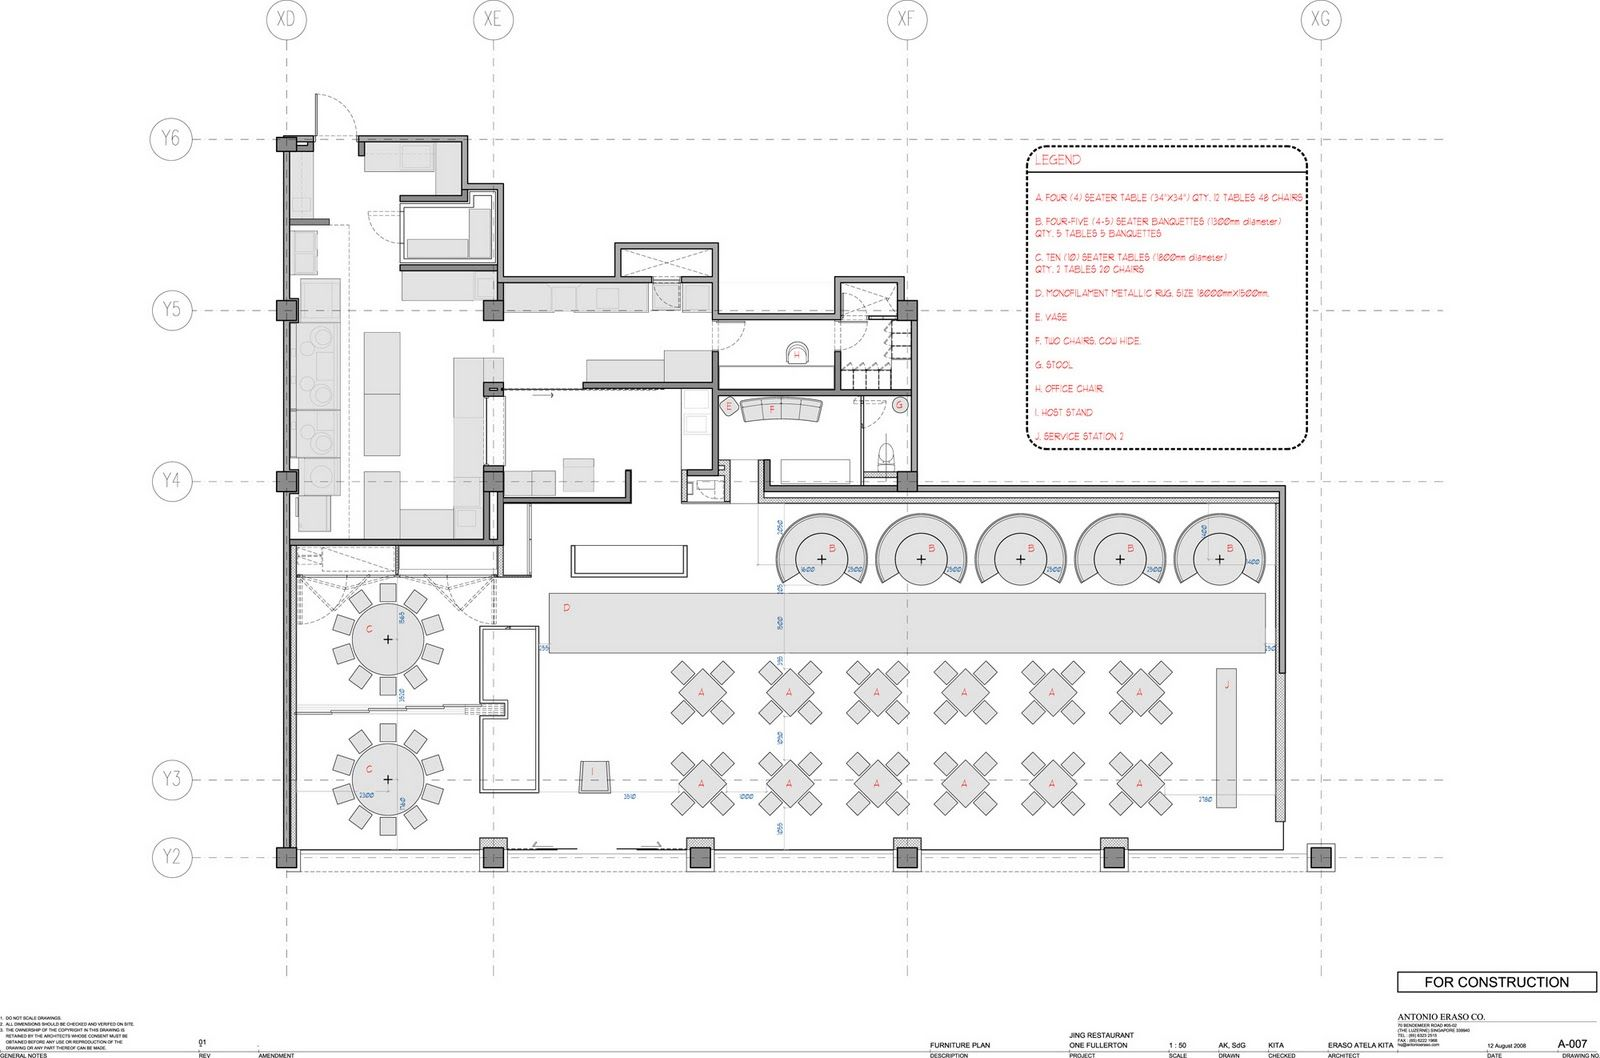 Restaurant Floor Plans Restaurant Kitchen Floor Plans Best Buy Axsoris Restaurant Designs